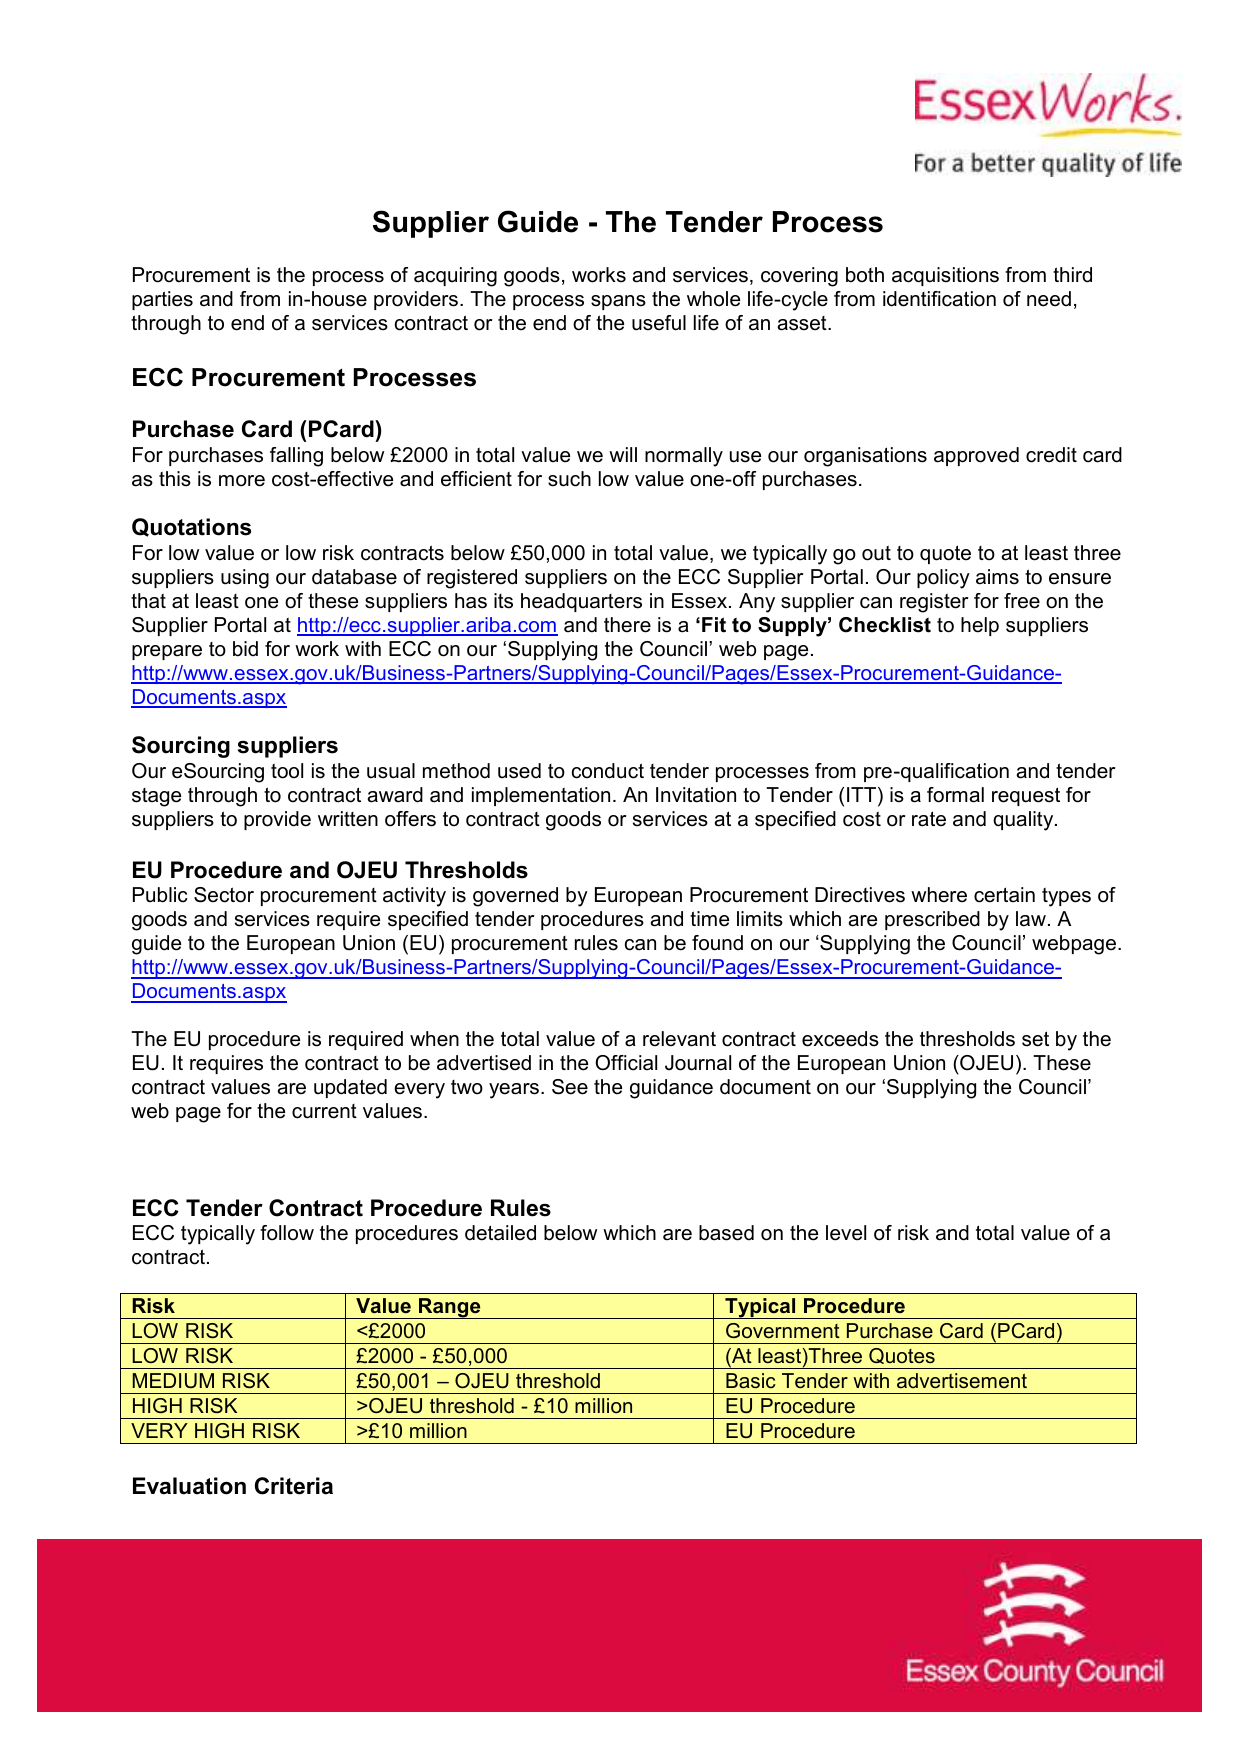 Supplier Guide - The Tender Process